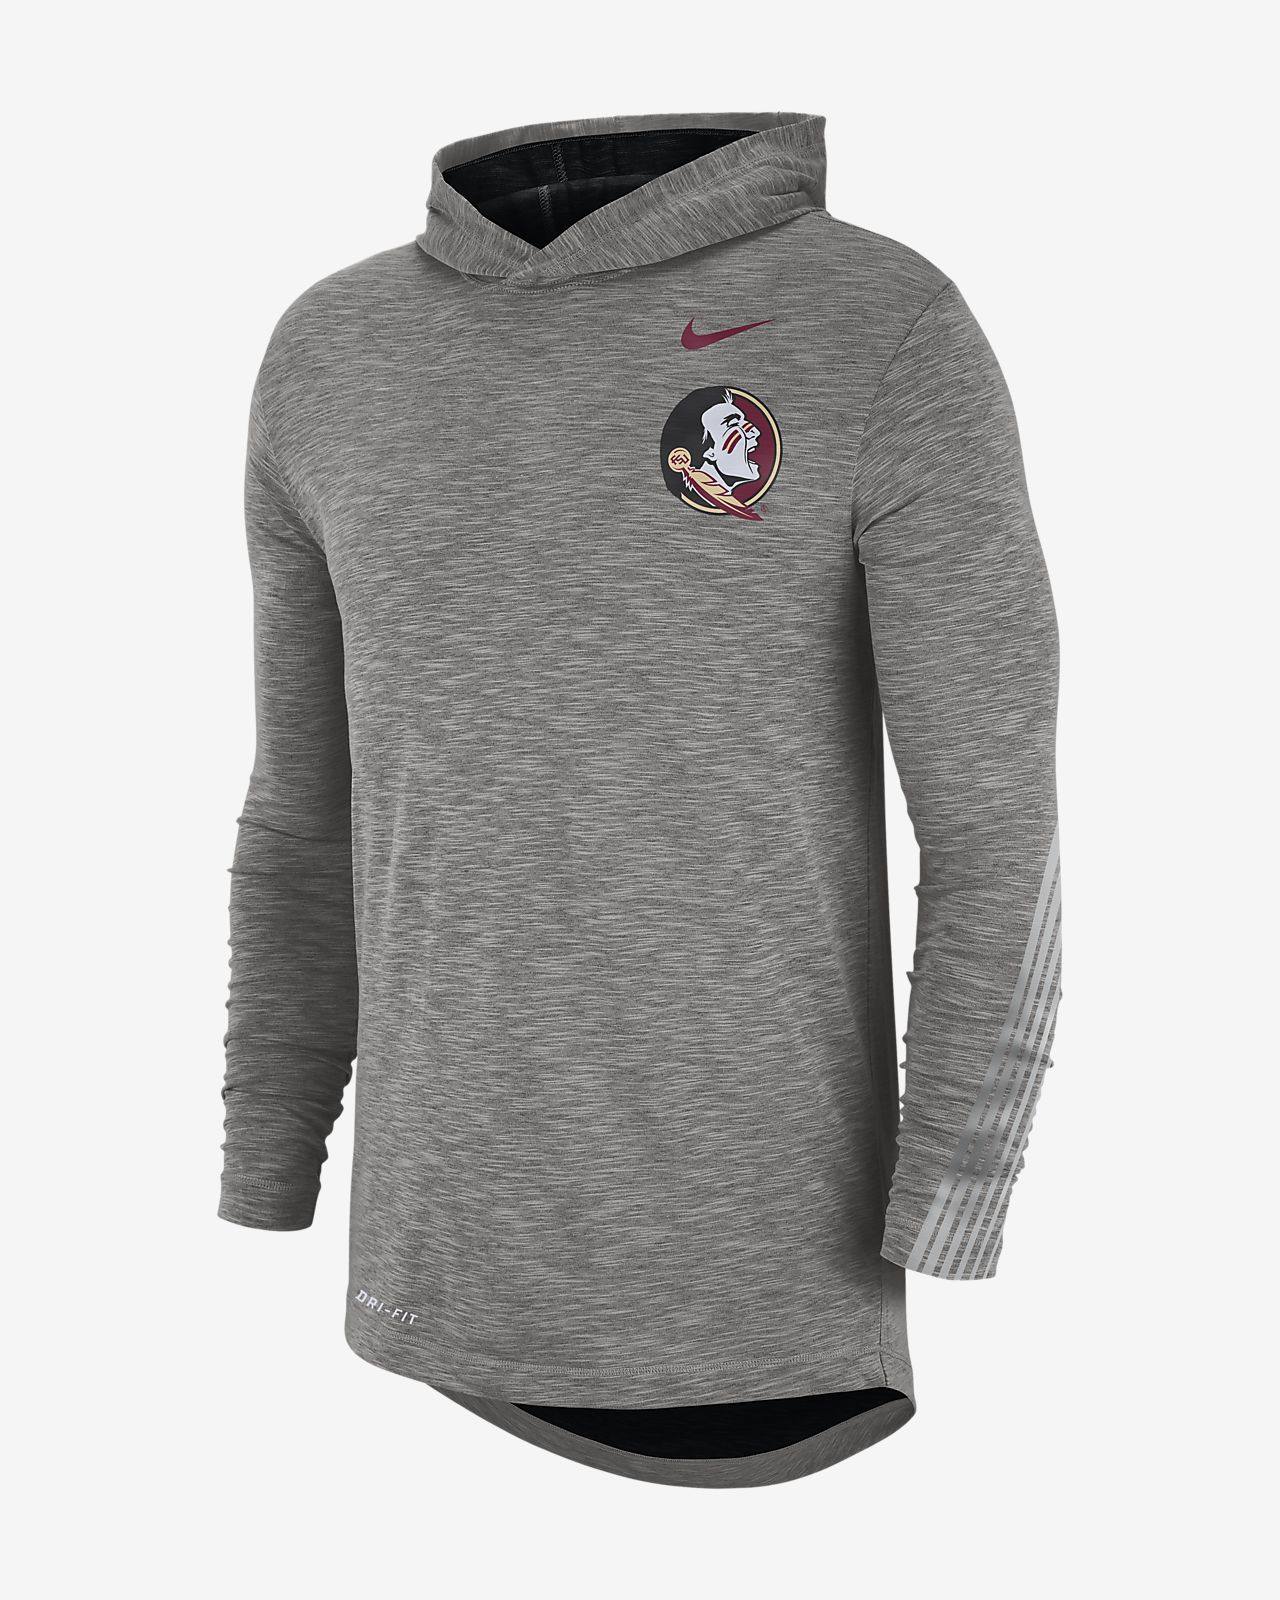 Nike College (Florida State) Men's Long-Sleeve Hooded T-Shirt